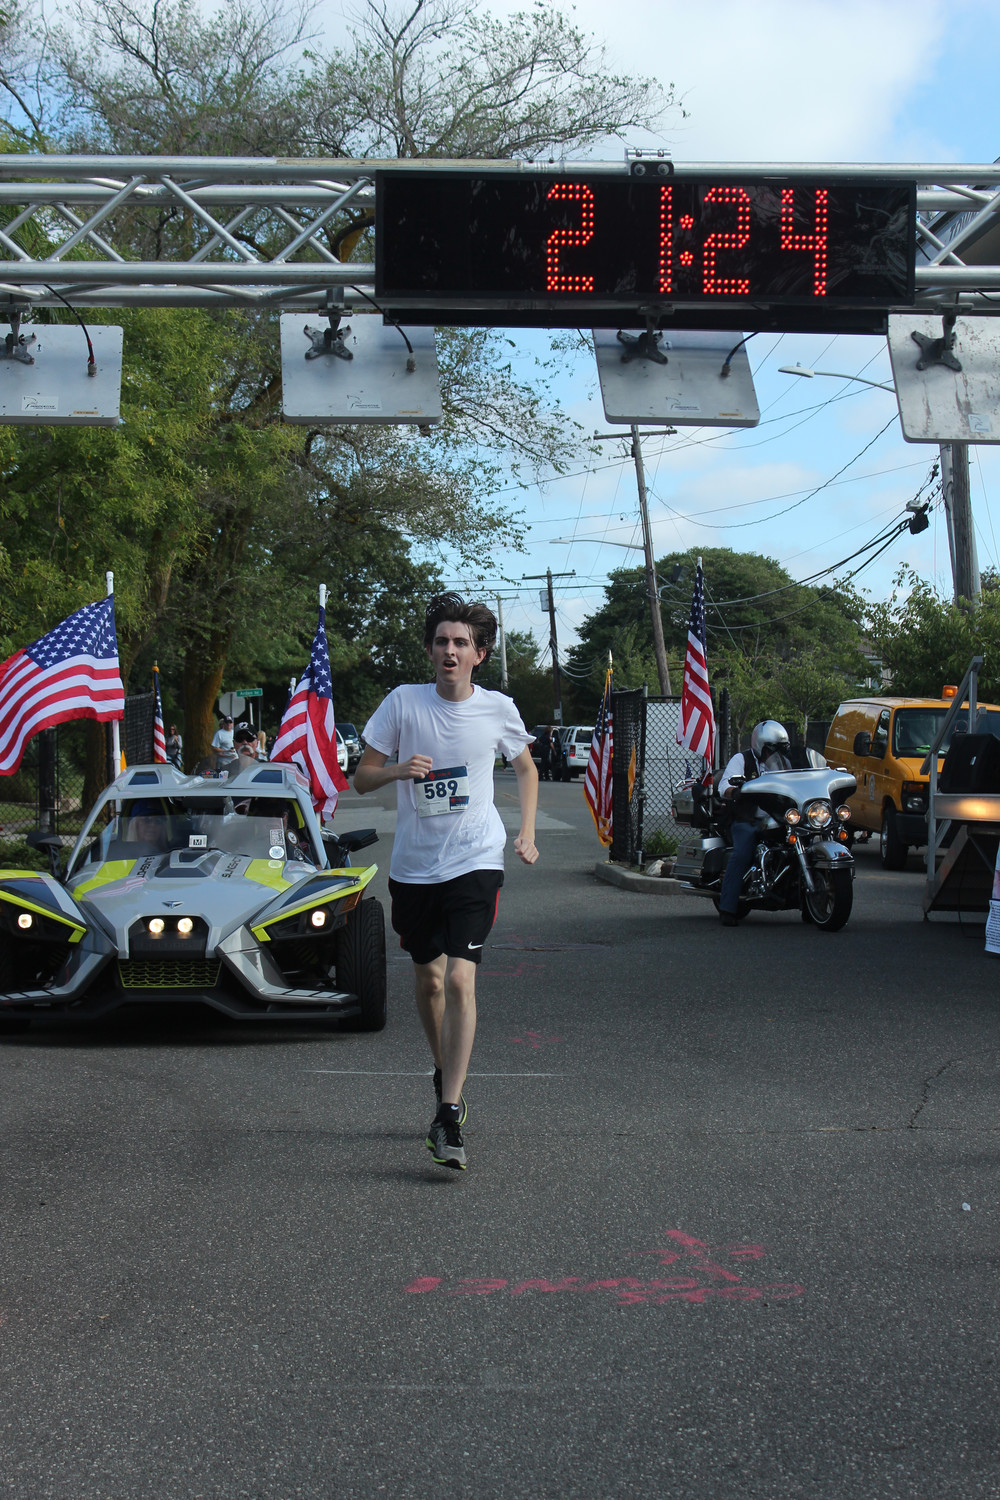 Lynbrook resident Patrick Leahy clocked in with the best overall time at 21 minutes, 24 seconds.